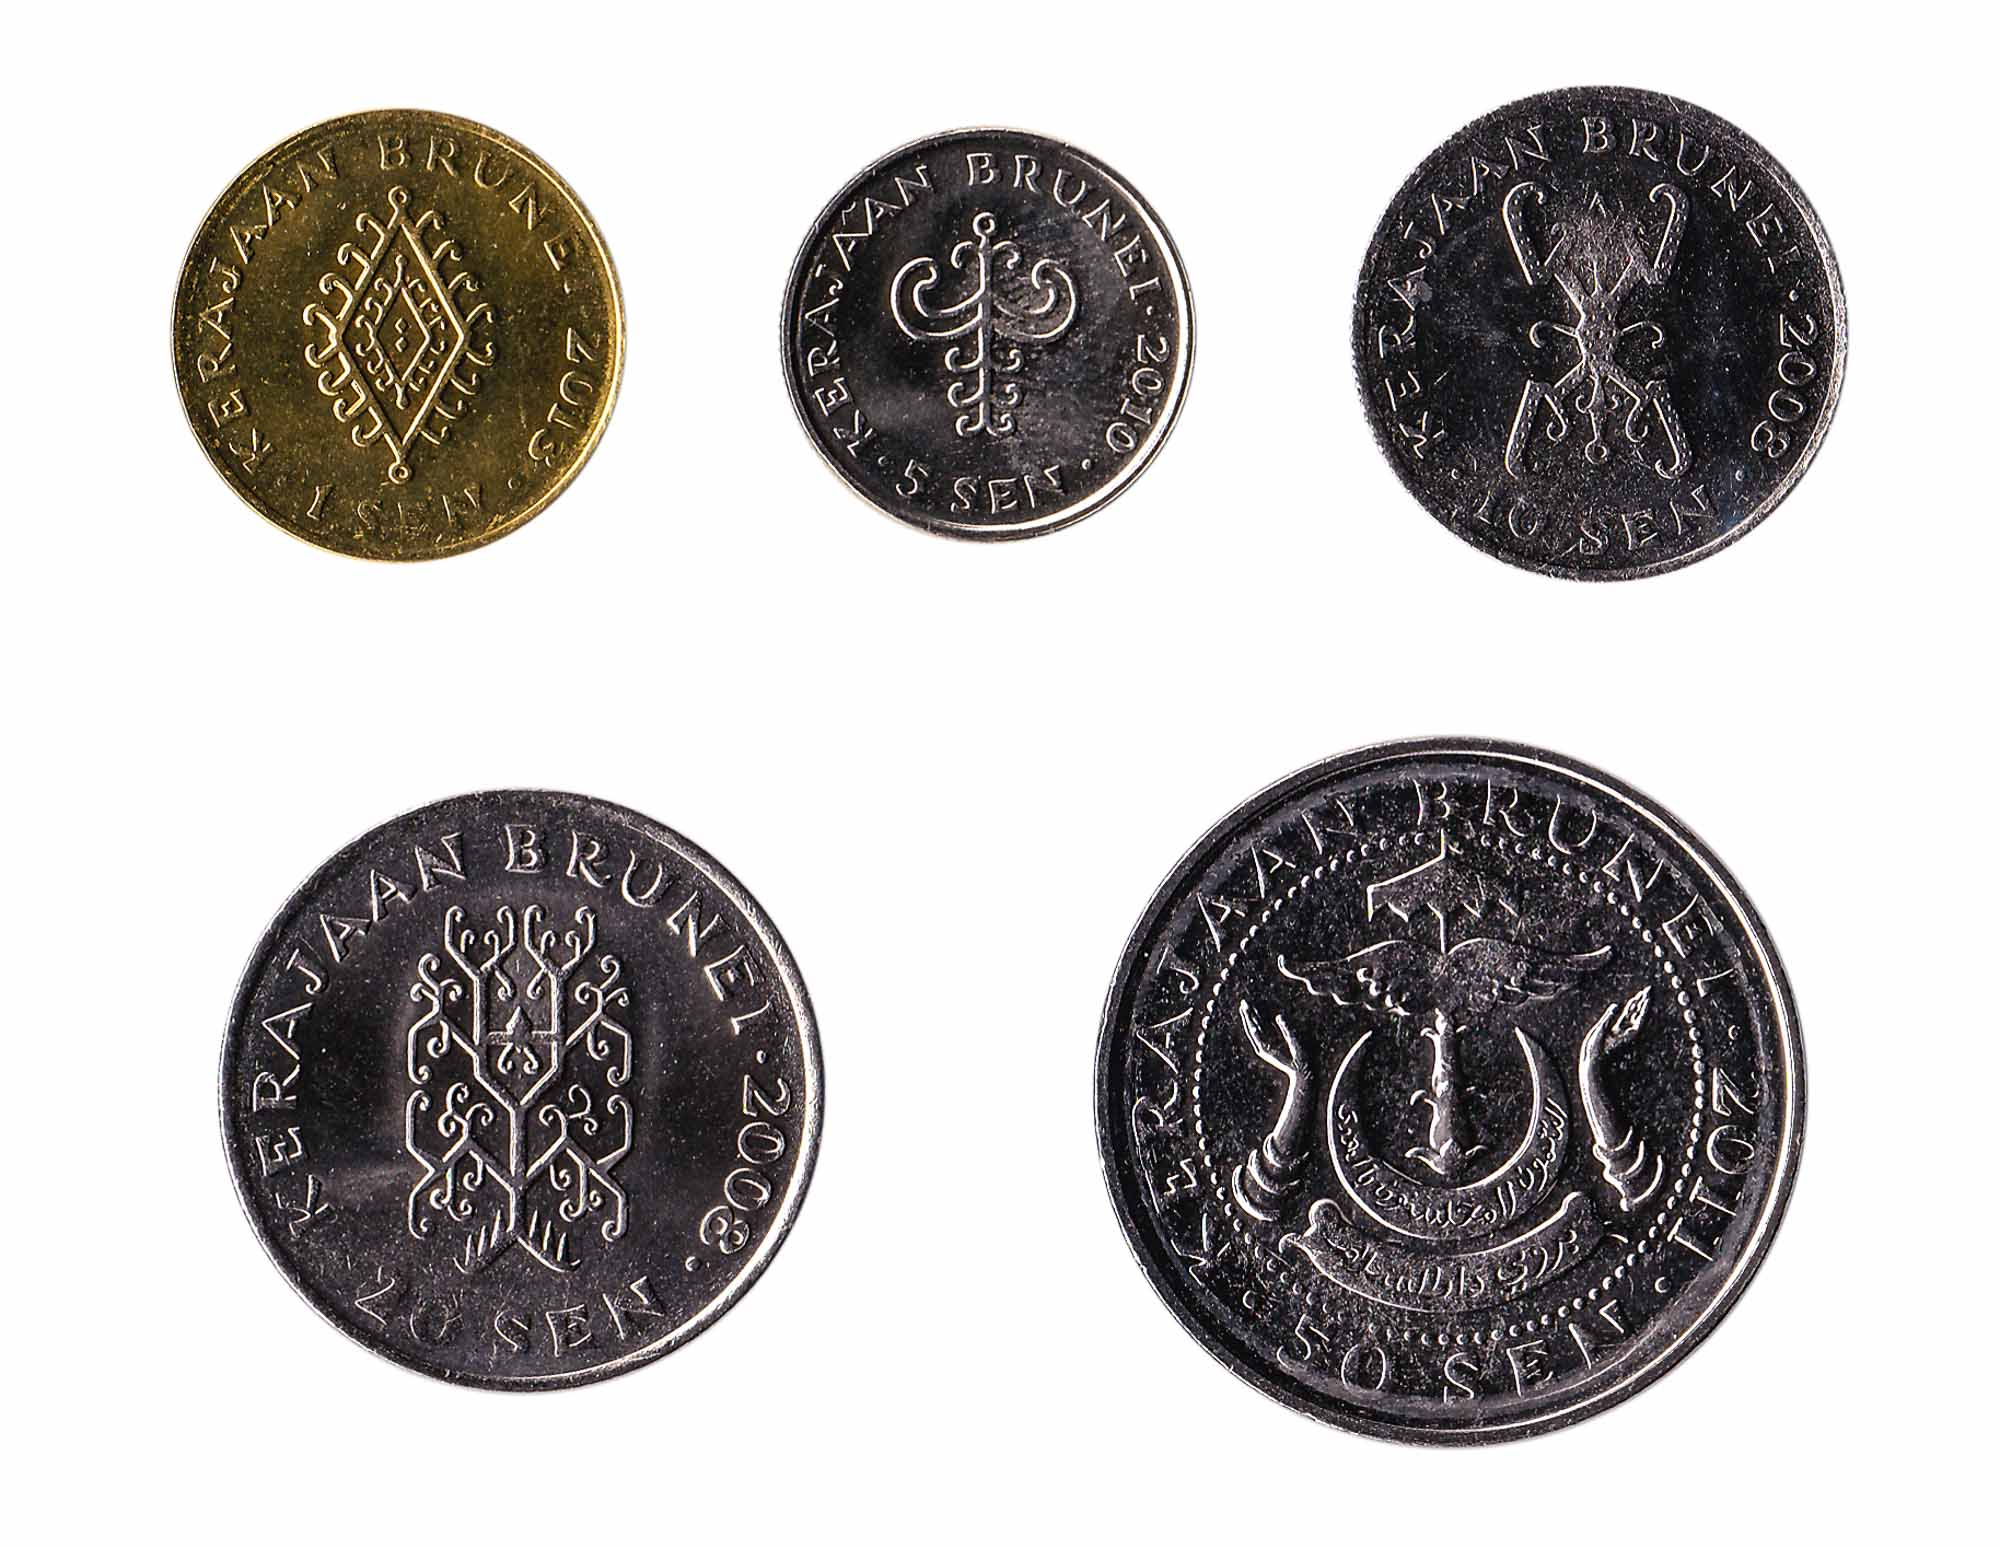 Brunei dollar coins